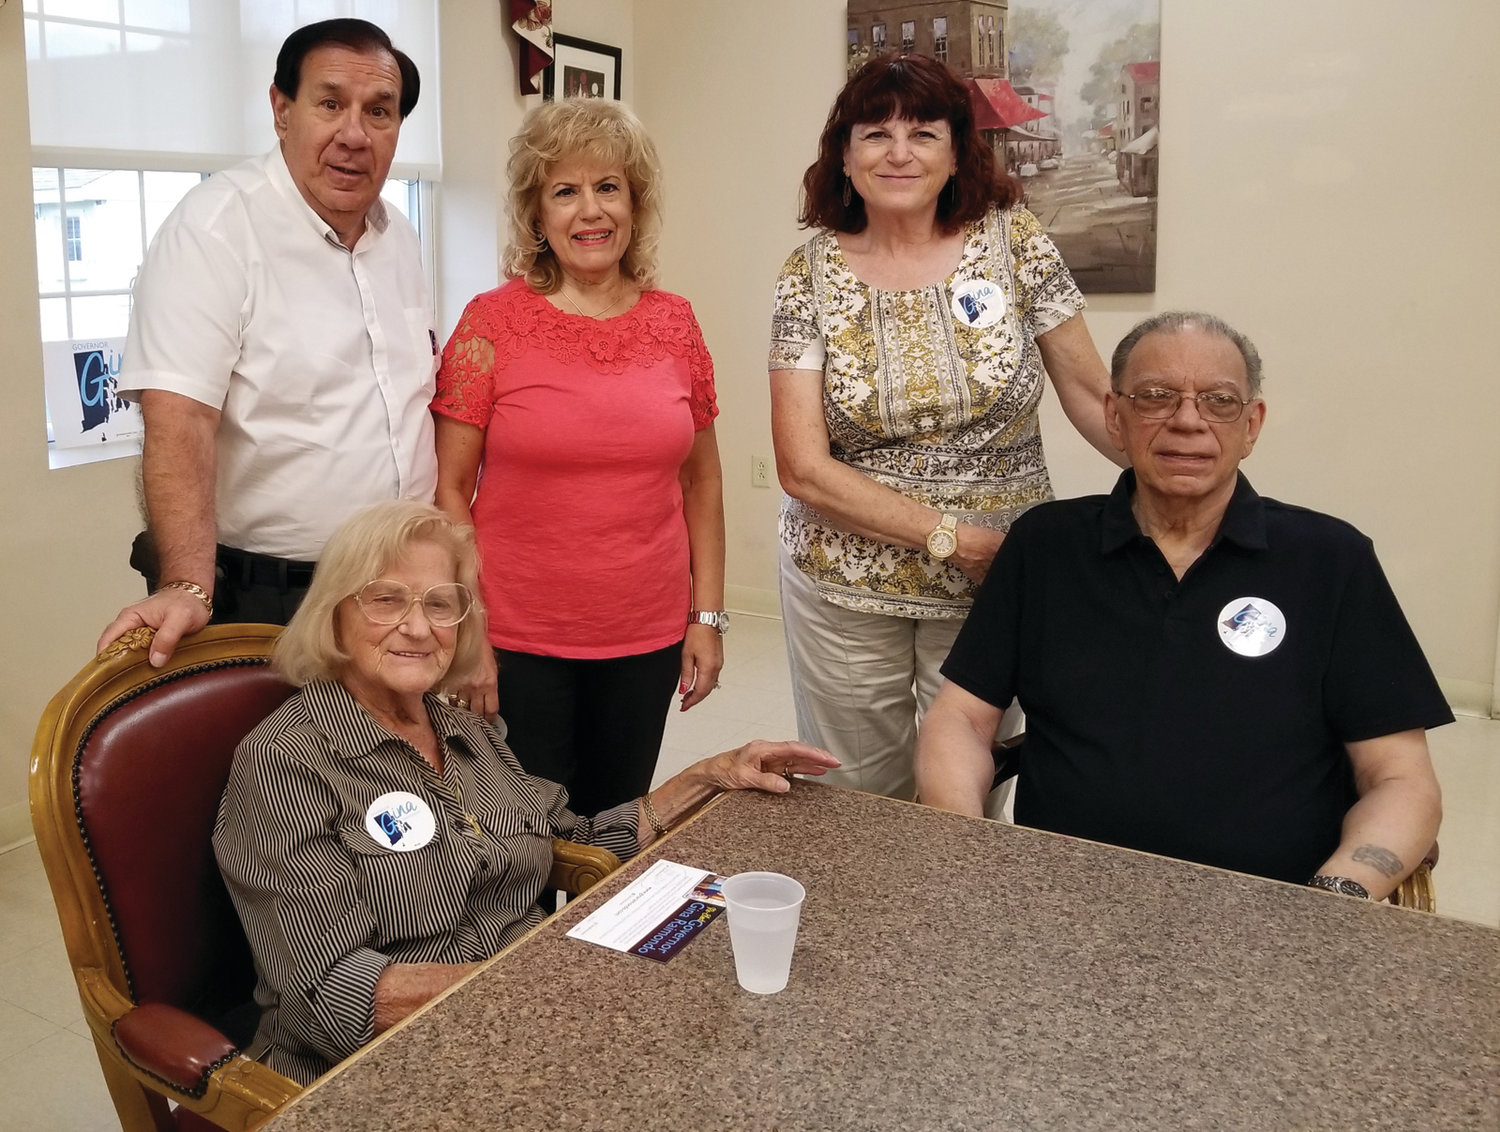 FRIENDLY FACES: Some of Mary Cerra's best friends, who in recent years helped take her to different social and political events, are Cliff and Ann Esposito, Linda Folcarelli and Frank Silva.